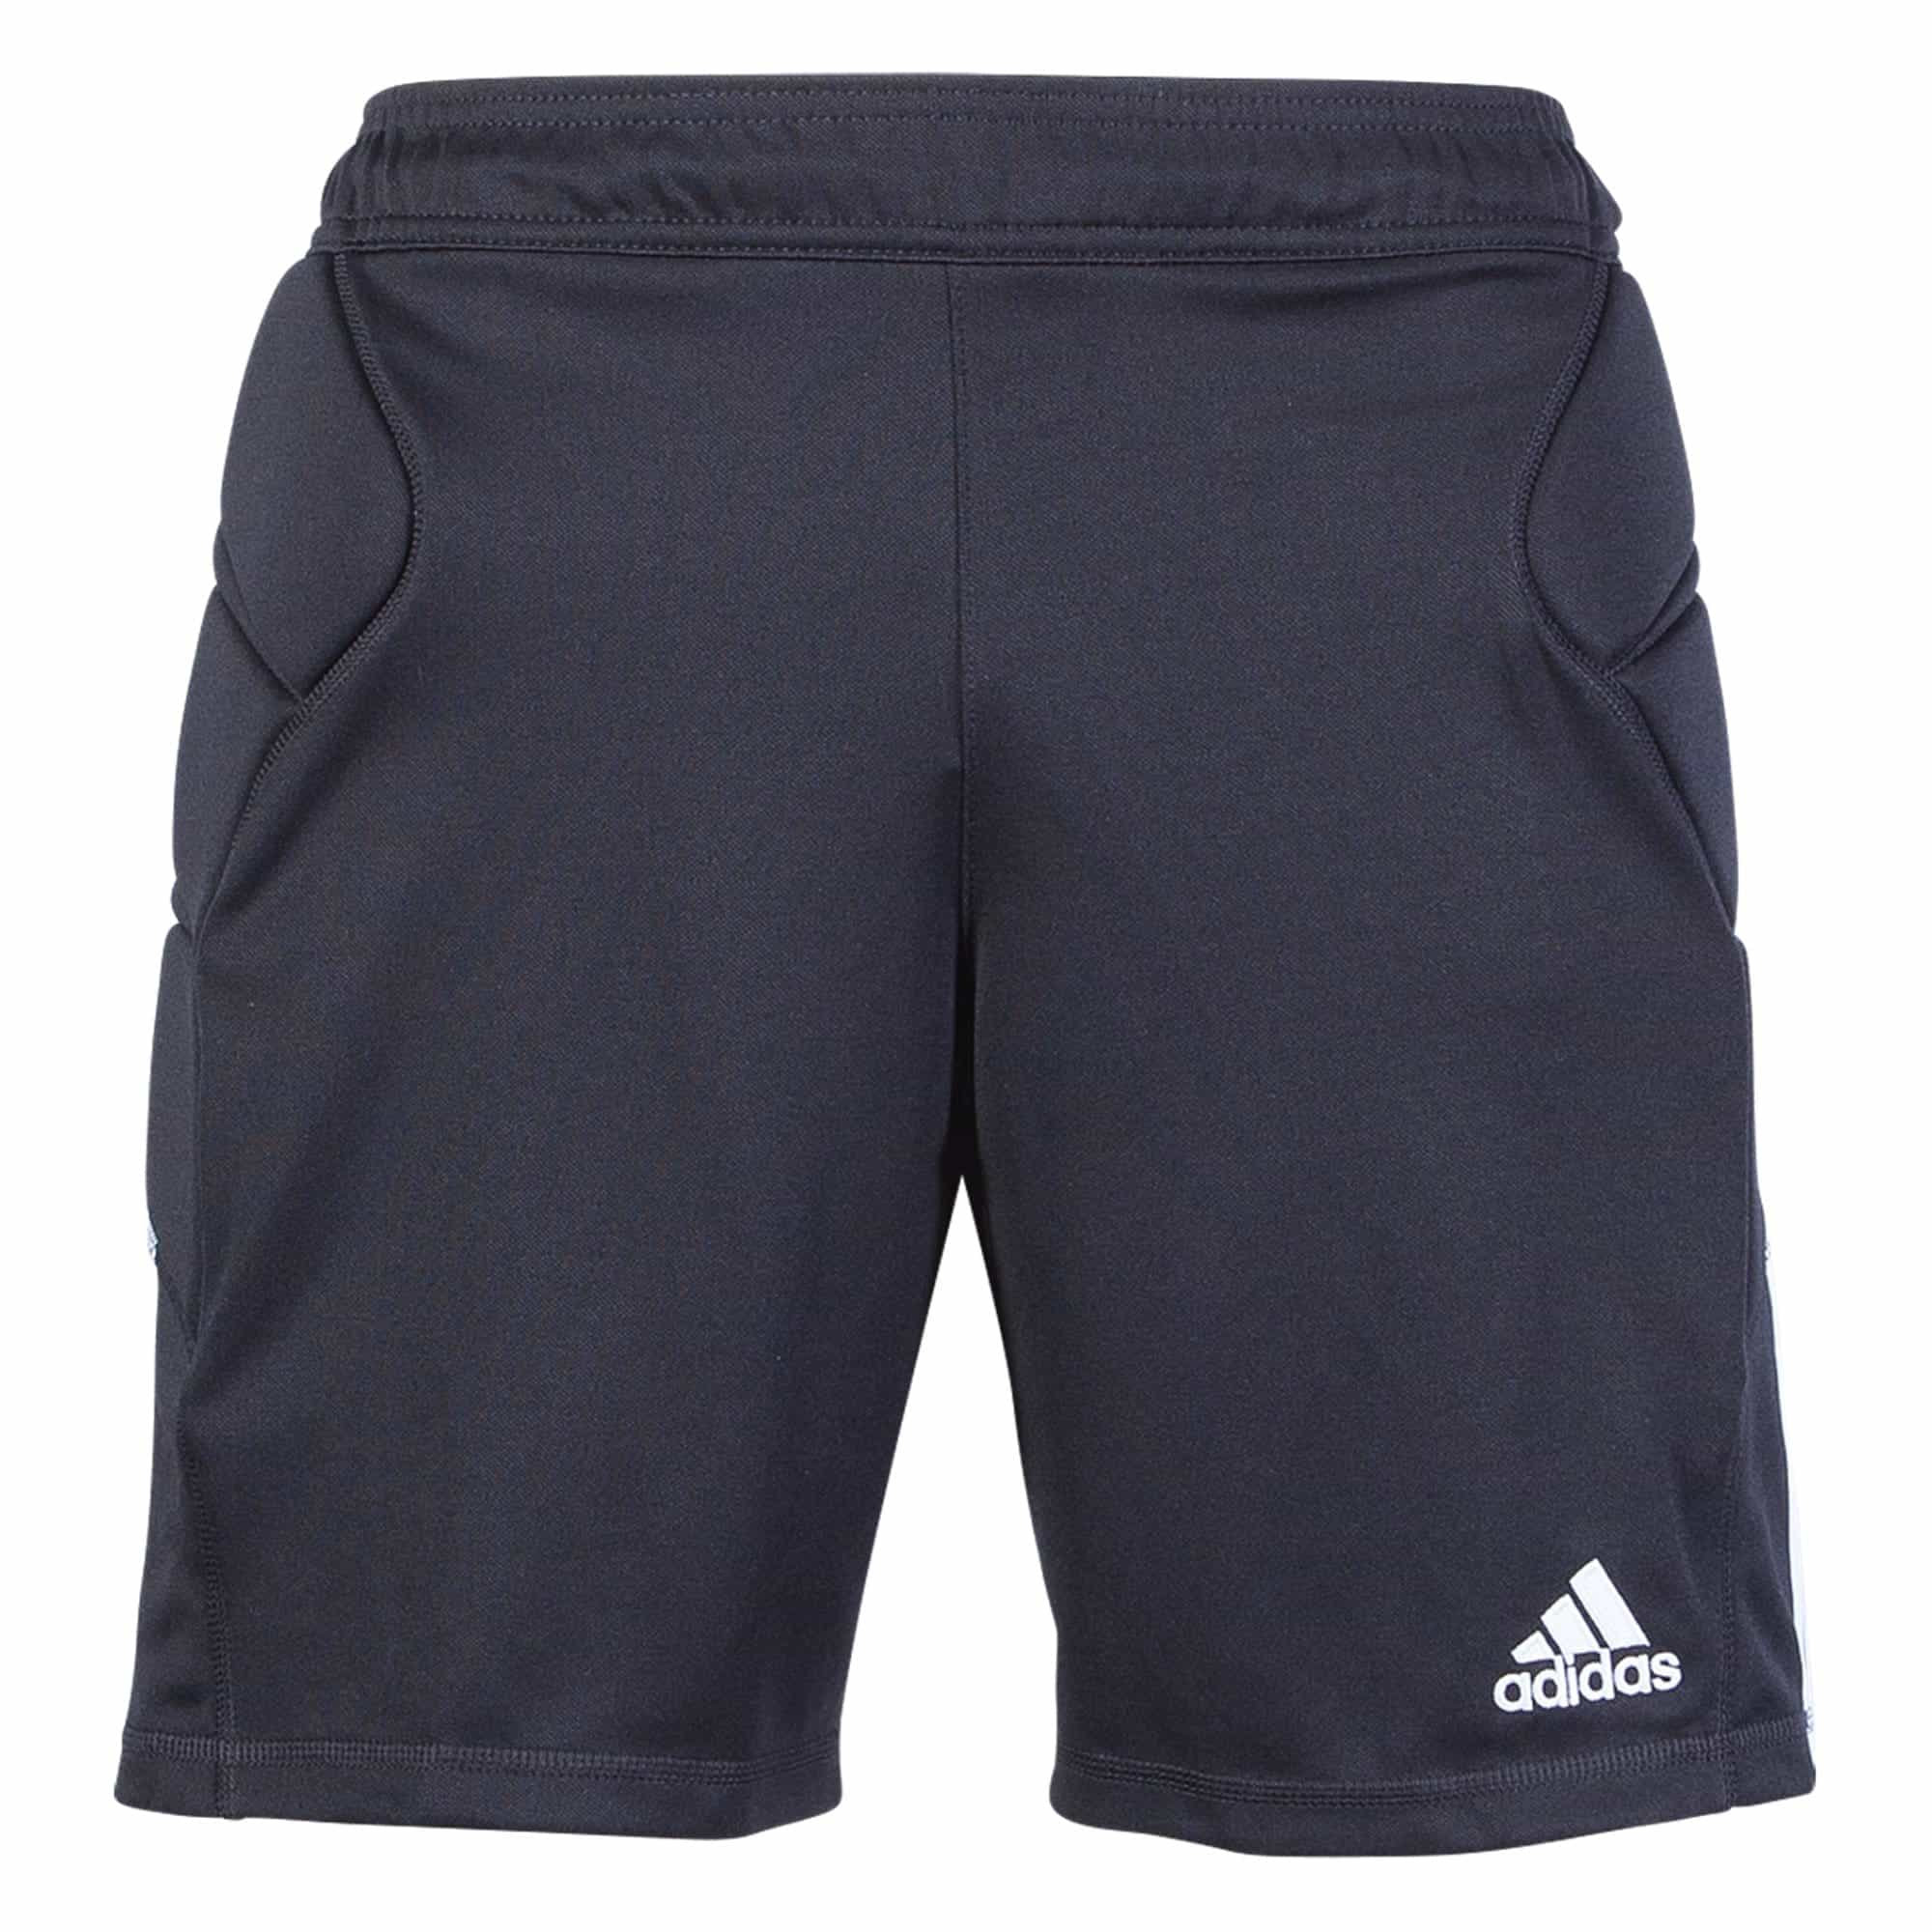 Adidas Tierro 13 Goalkeeper Short